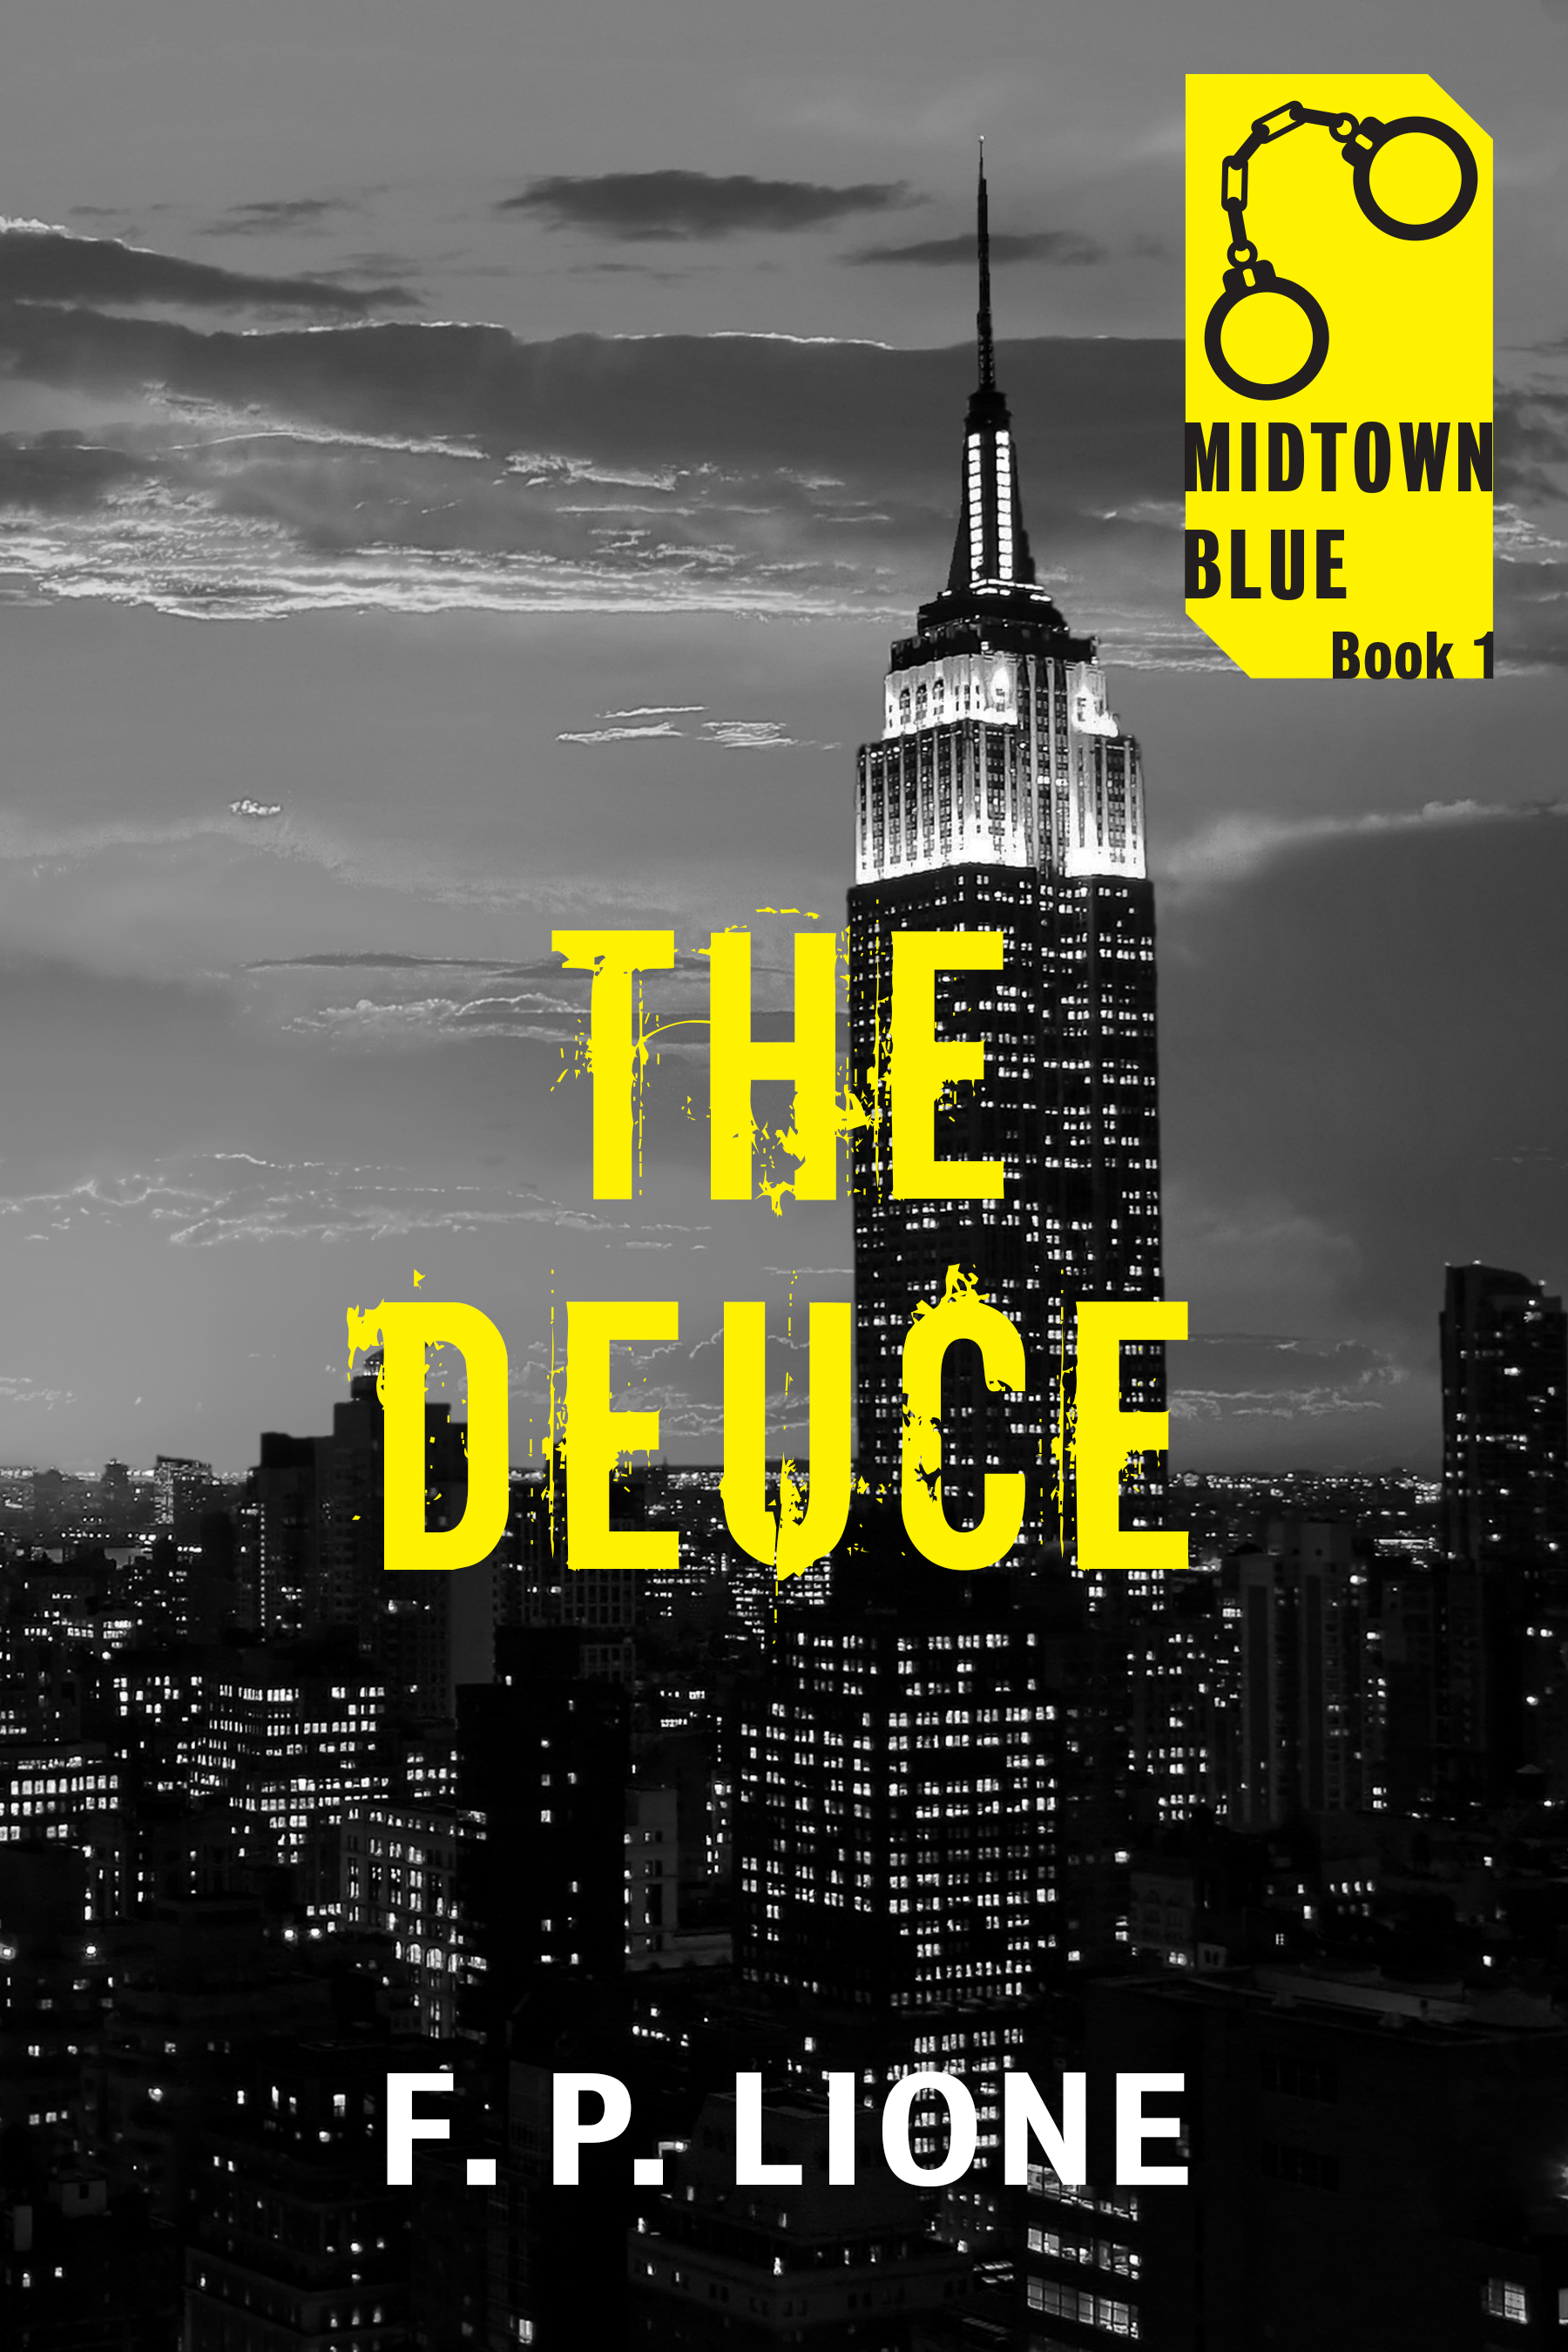 The Deuce by F.P. Lione